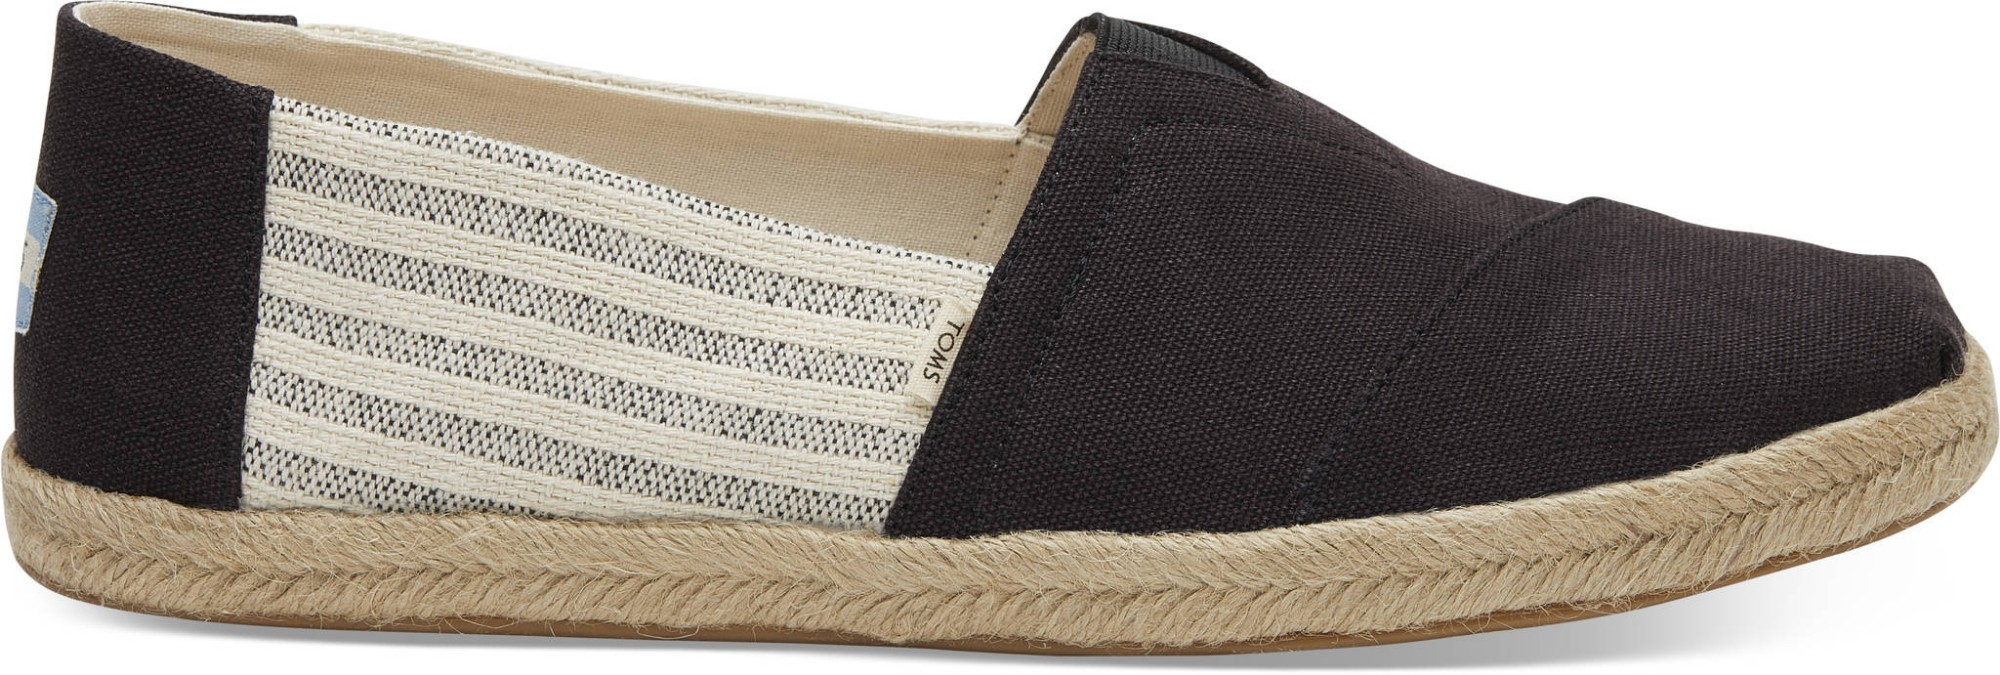 TOMS Canvas Ivy League on Rope Men's Alpargata Black 46